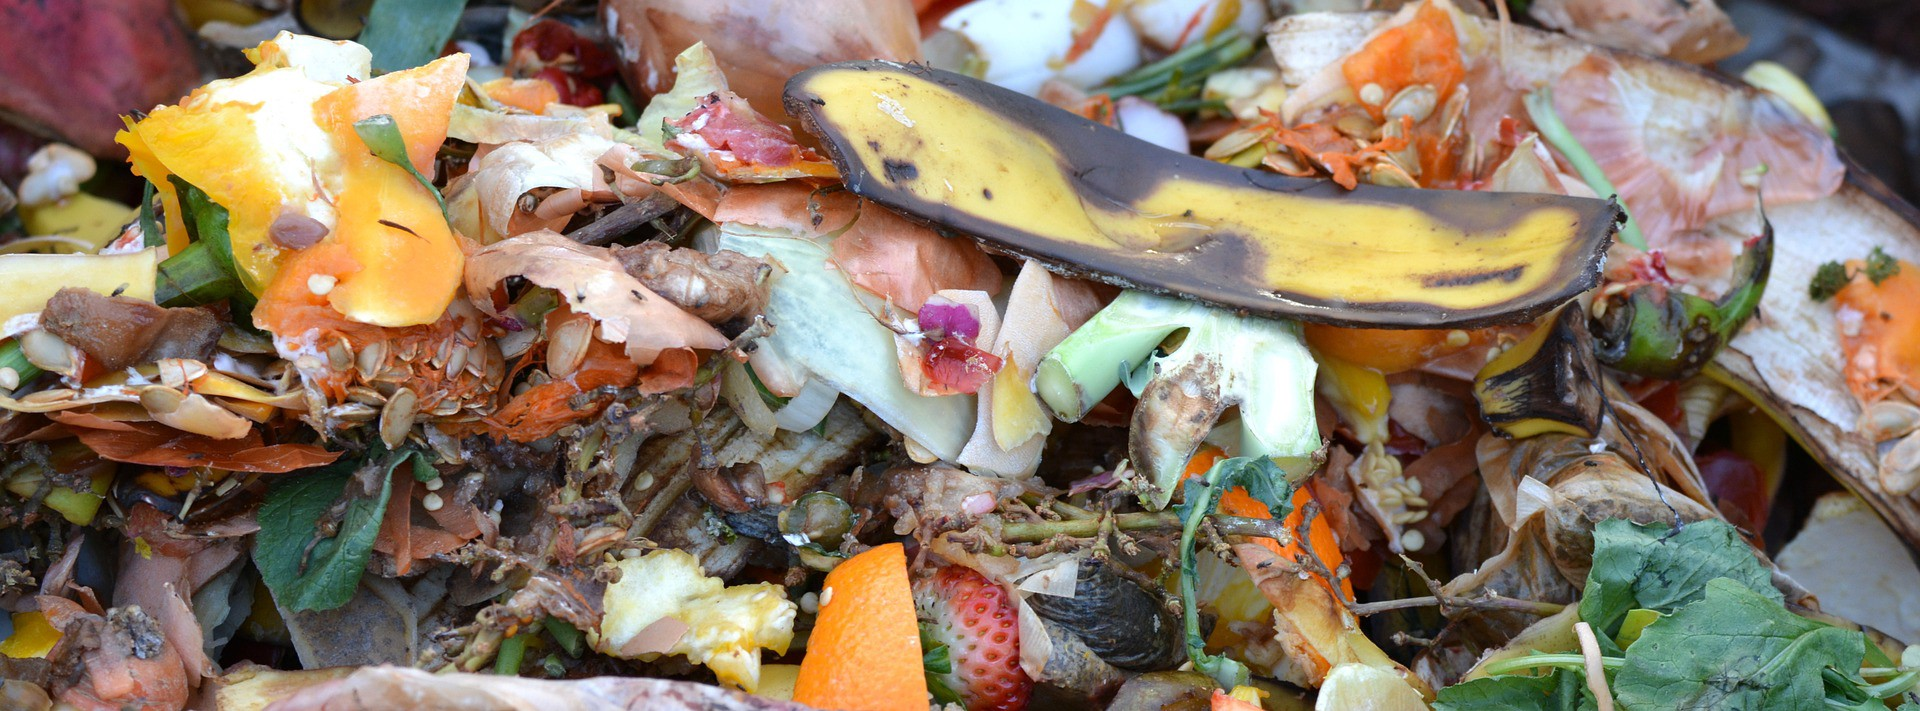 A pile of food scraps, including banana peels, onion skin, and eggshells.